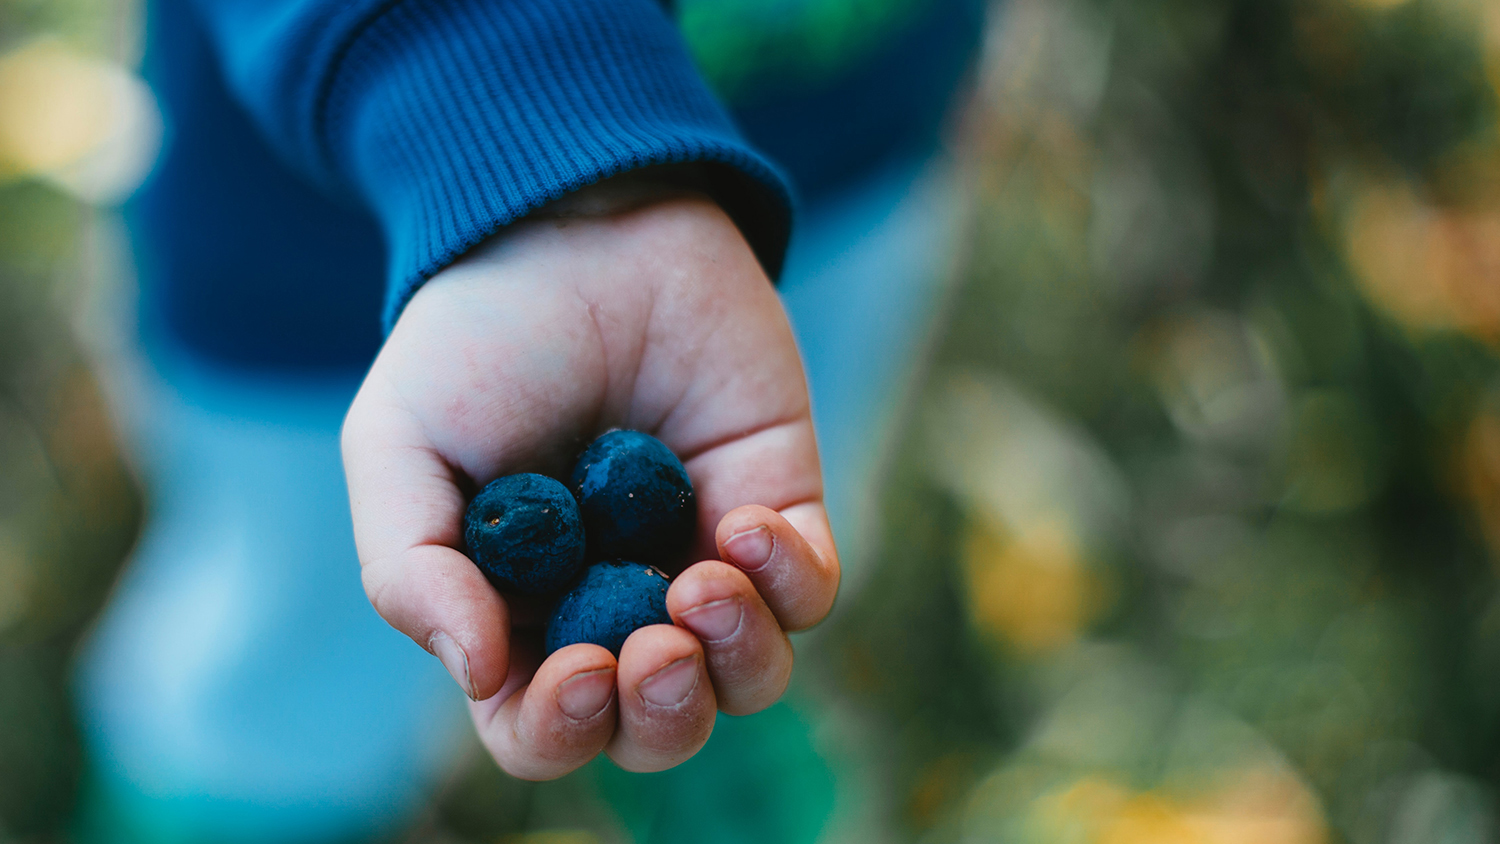 Image of three plump blueberries in the hand of a child